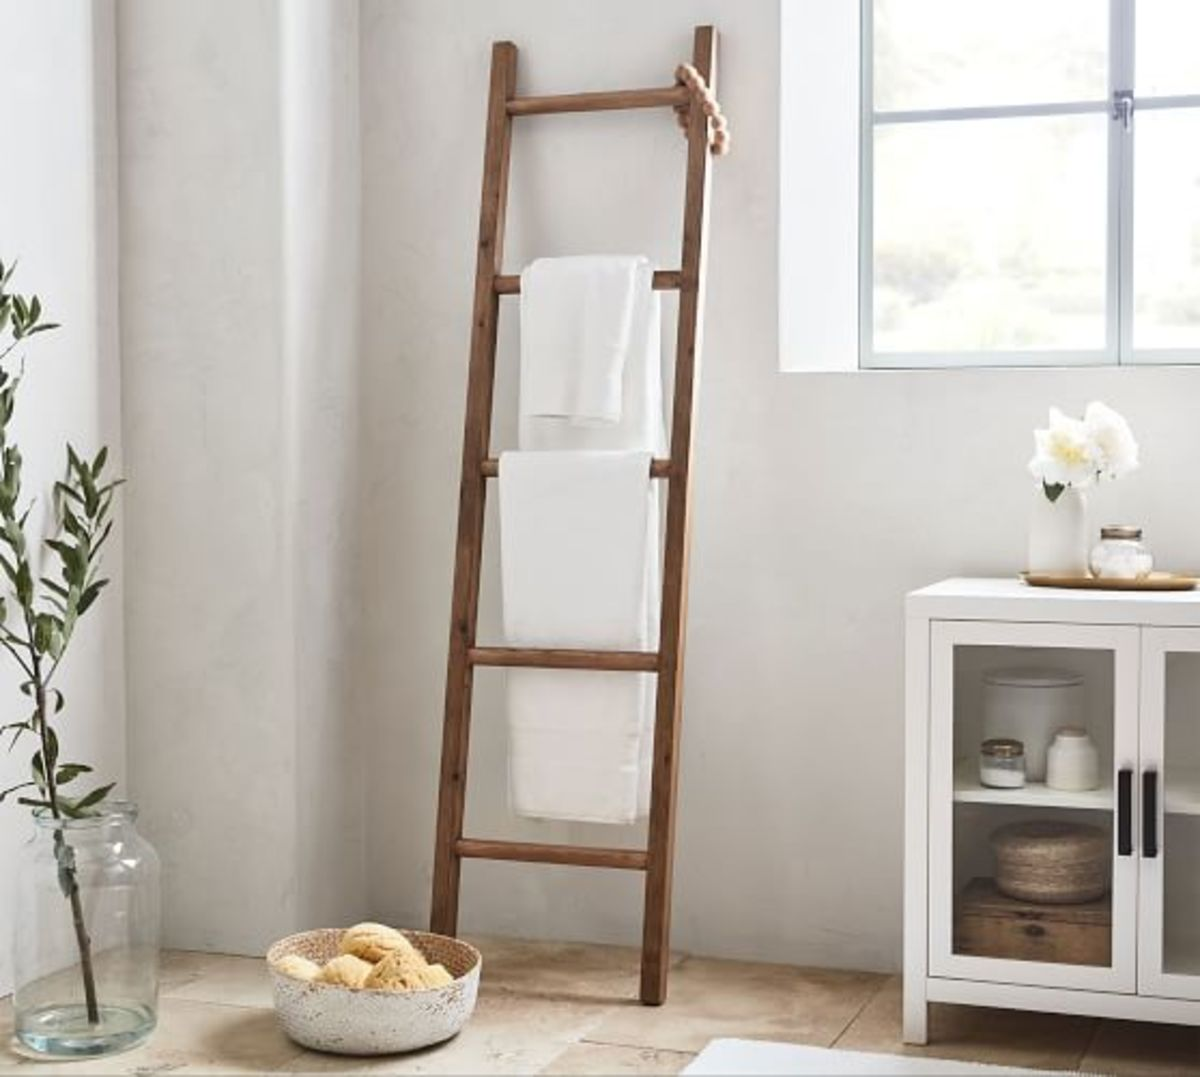 It makes a rustic ladder to hang towels in the bathroom.